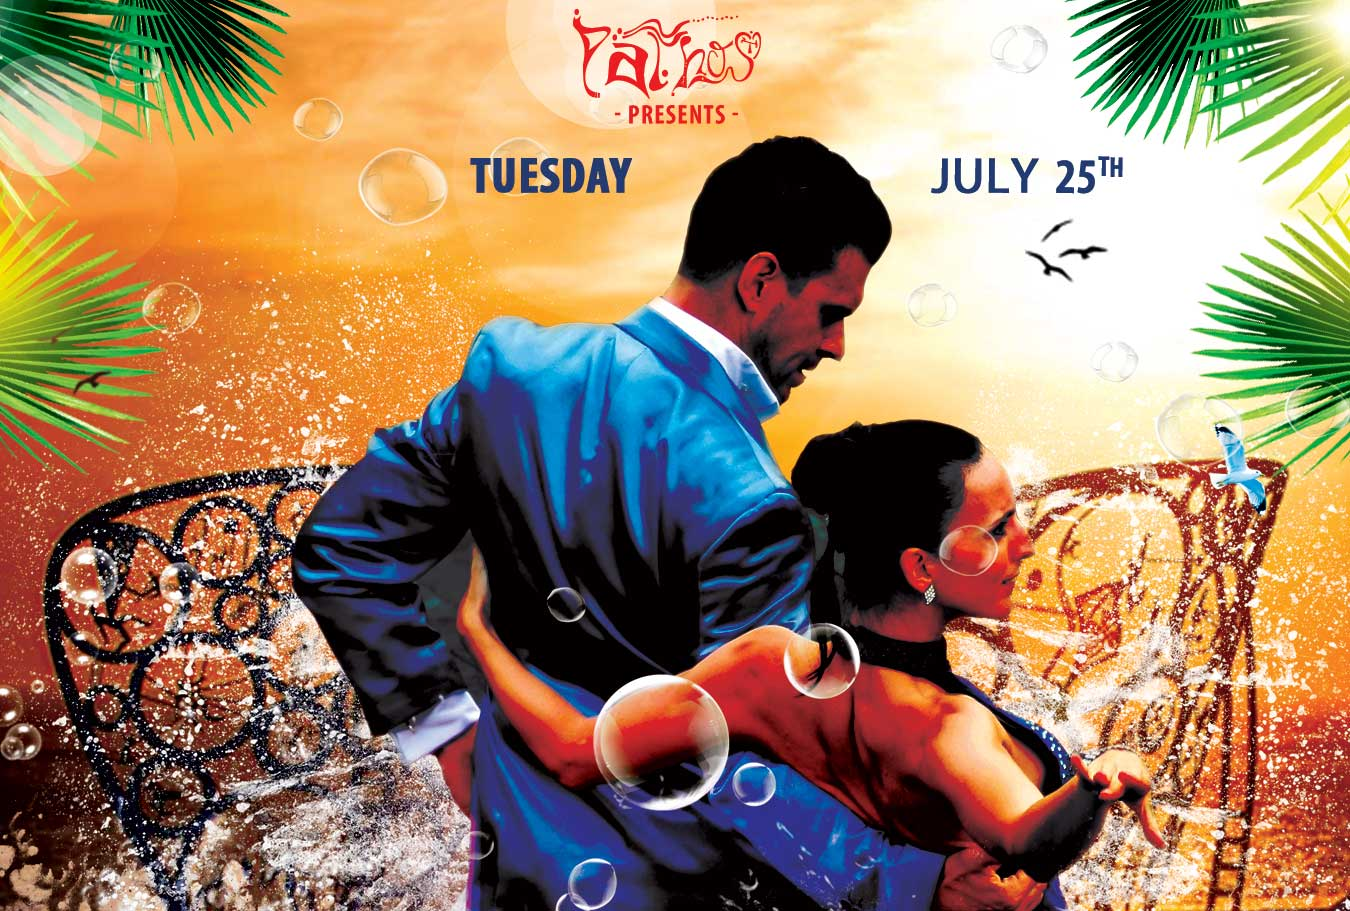 Latino Party in Ios Island - July 25th